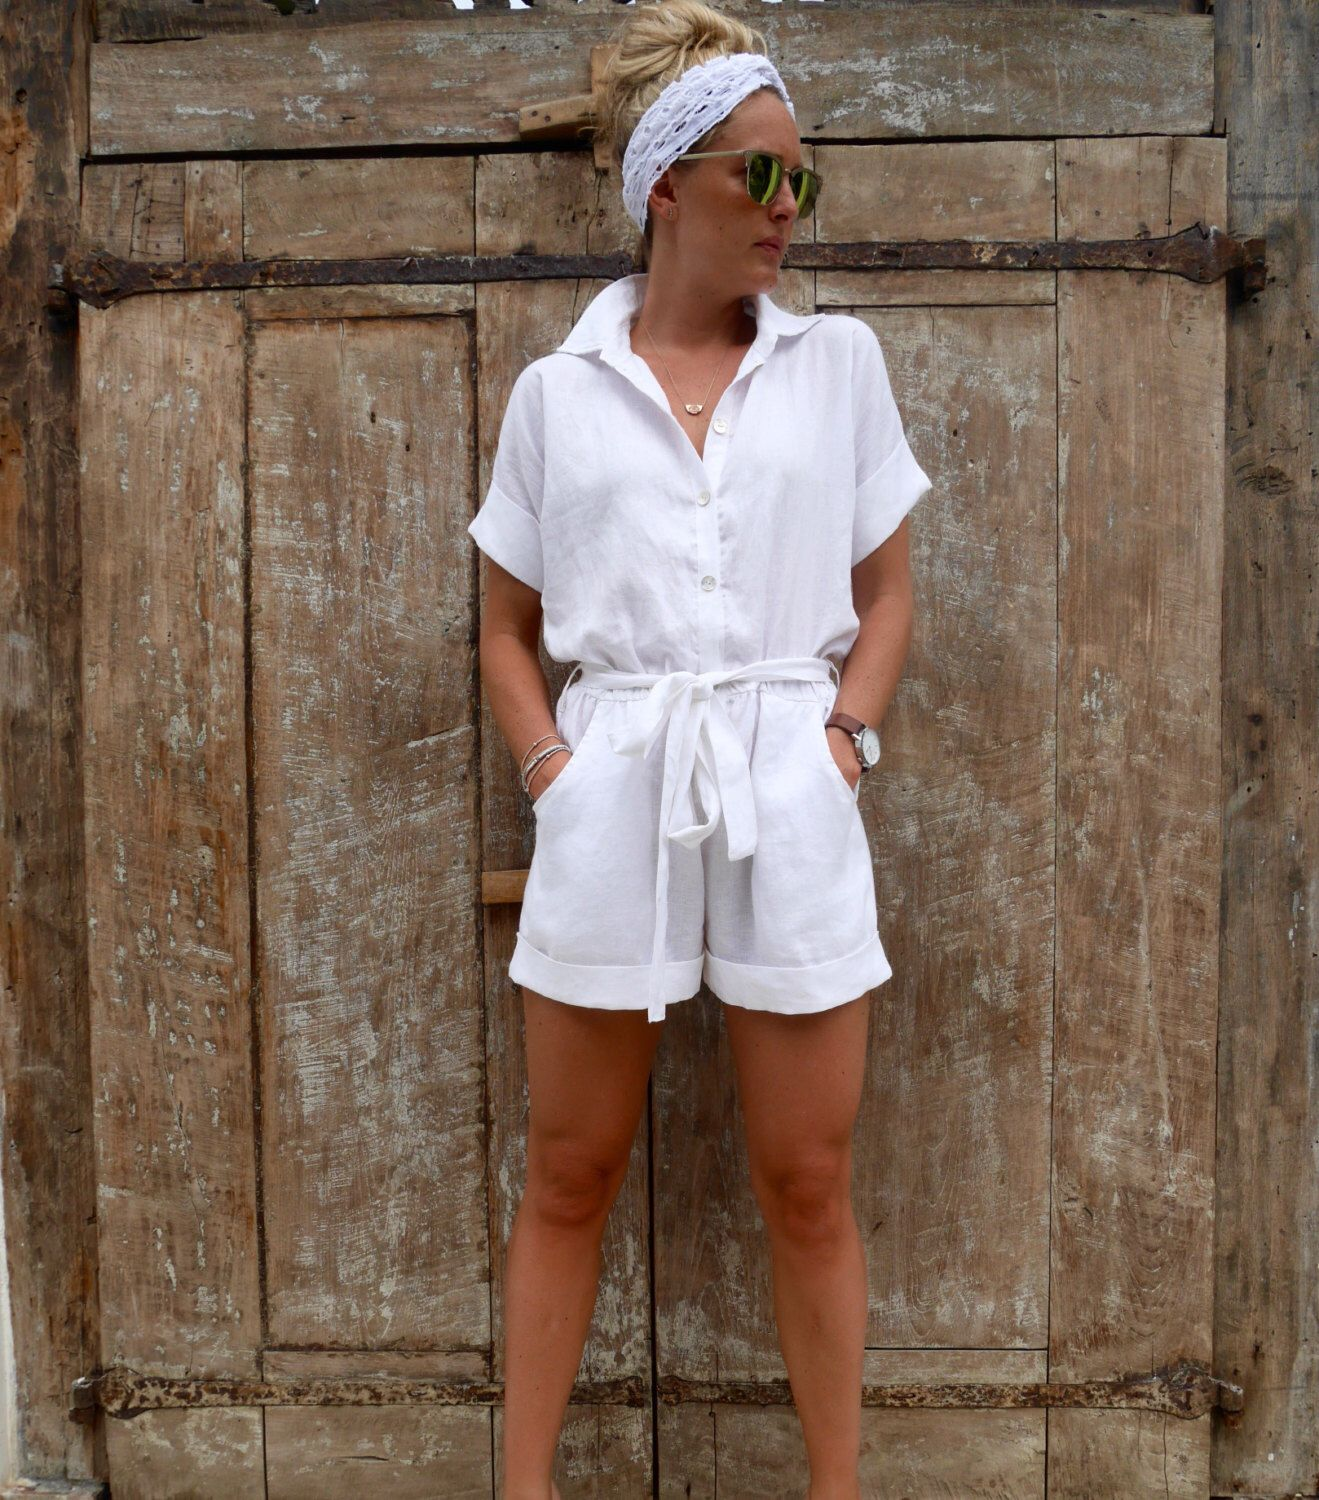 Pin By Mrs Lilien On Tropical Attire Playsuit White